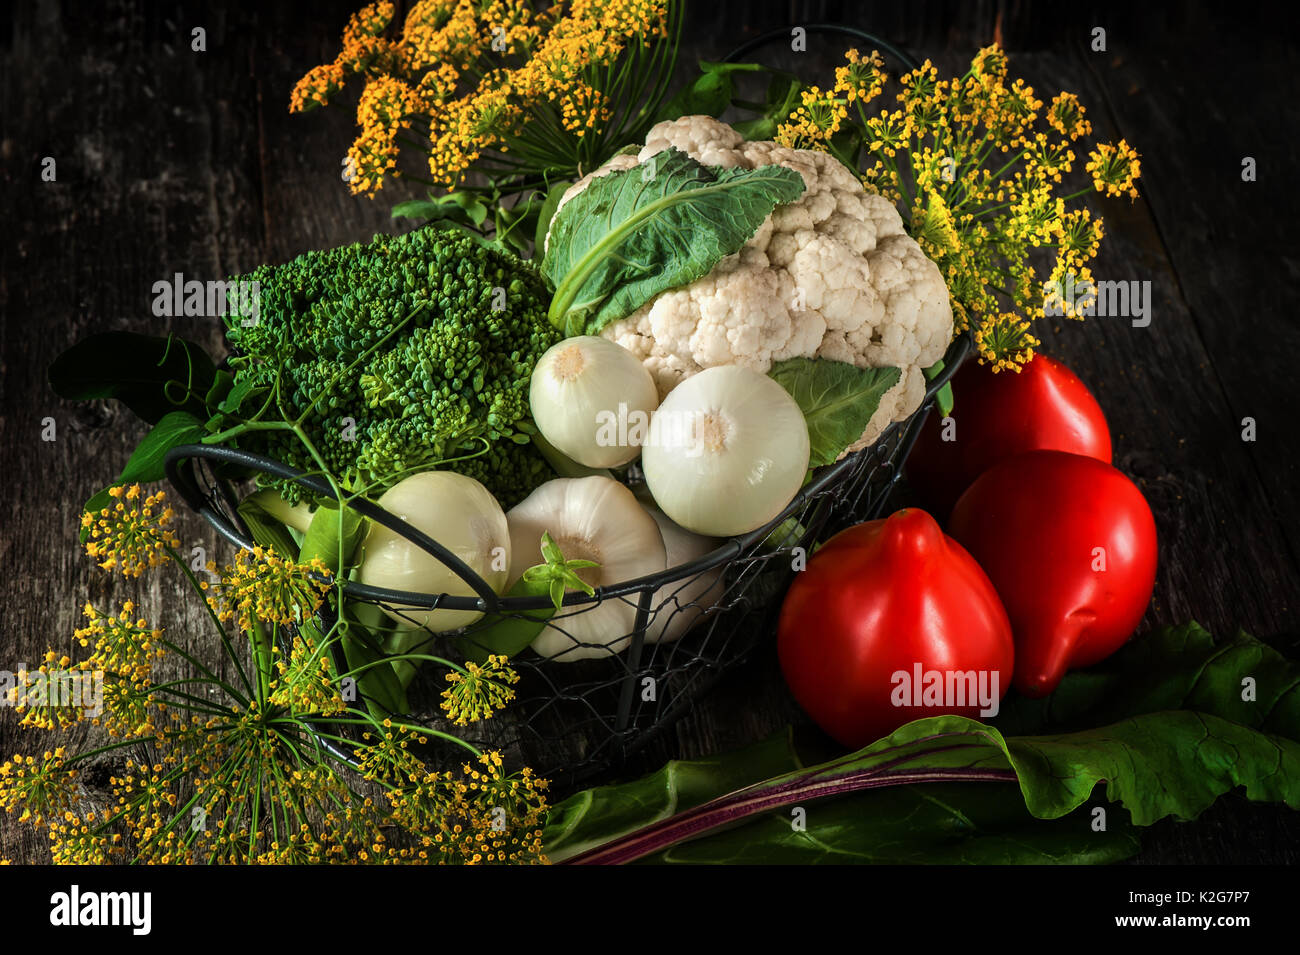 Mixed vegetables of cauliflower and broccoli, garlic, green onions, tomatoes and green peas on a wooden background in rustic style for Thanksgiving. - Stock Image